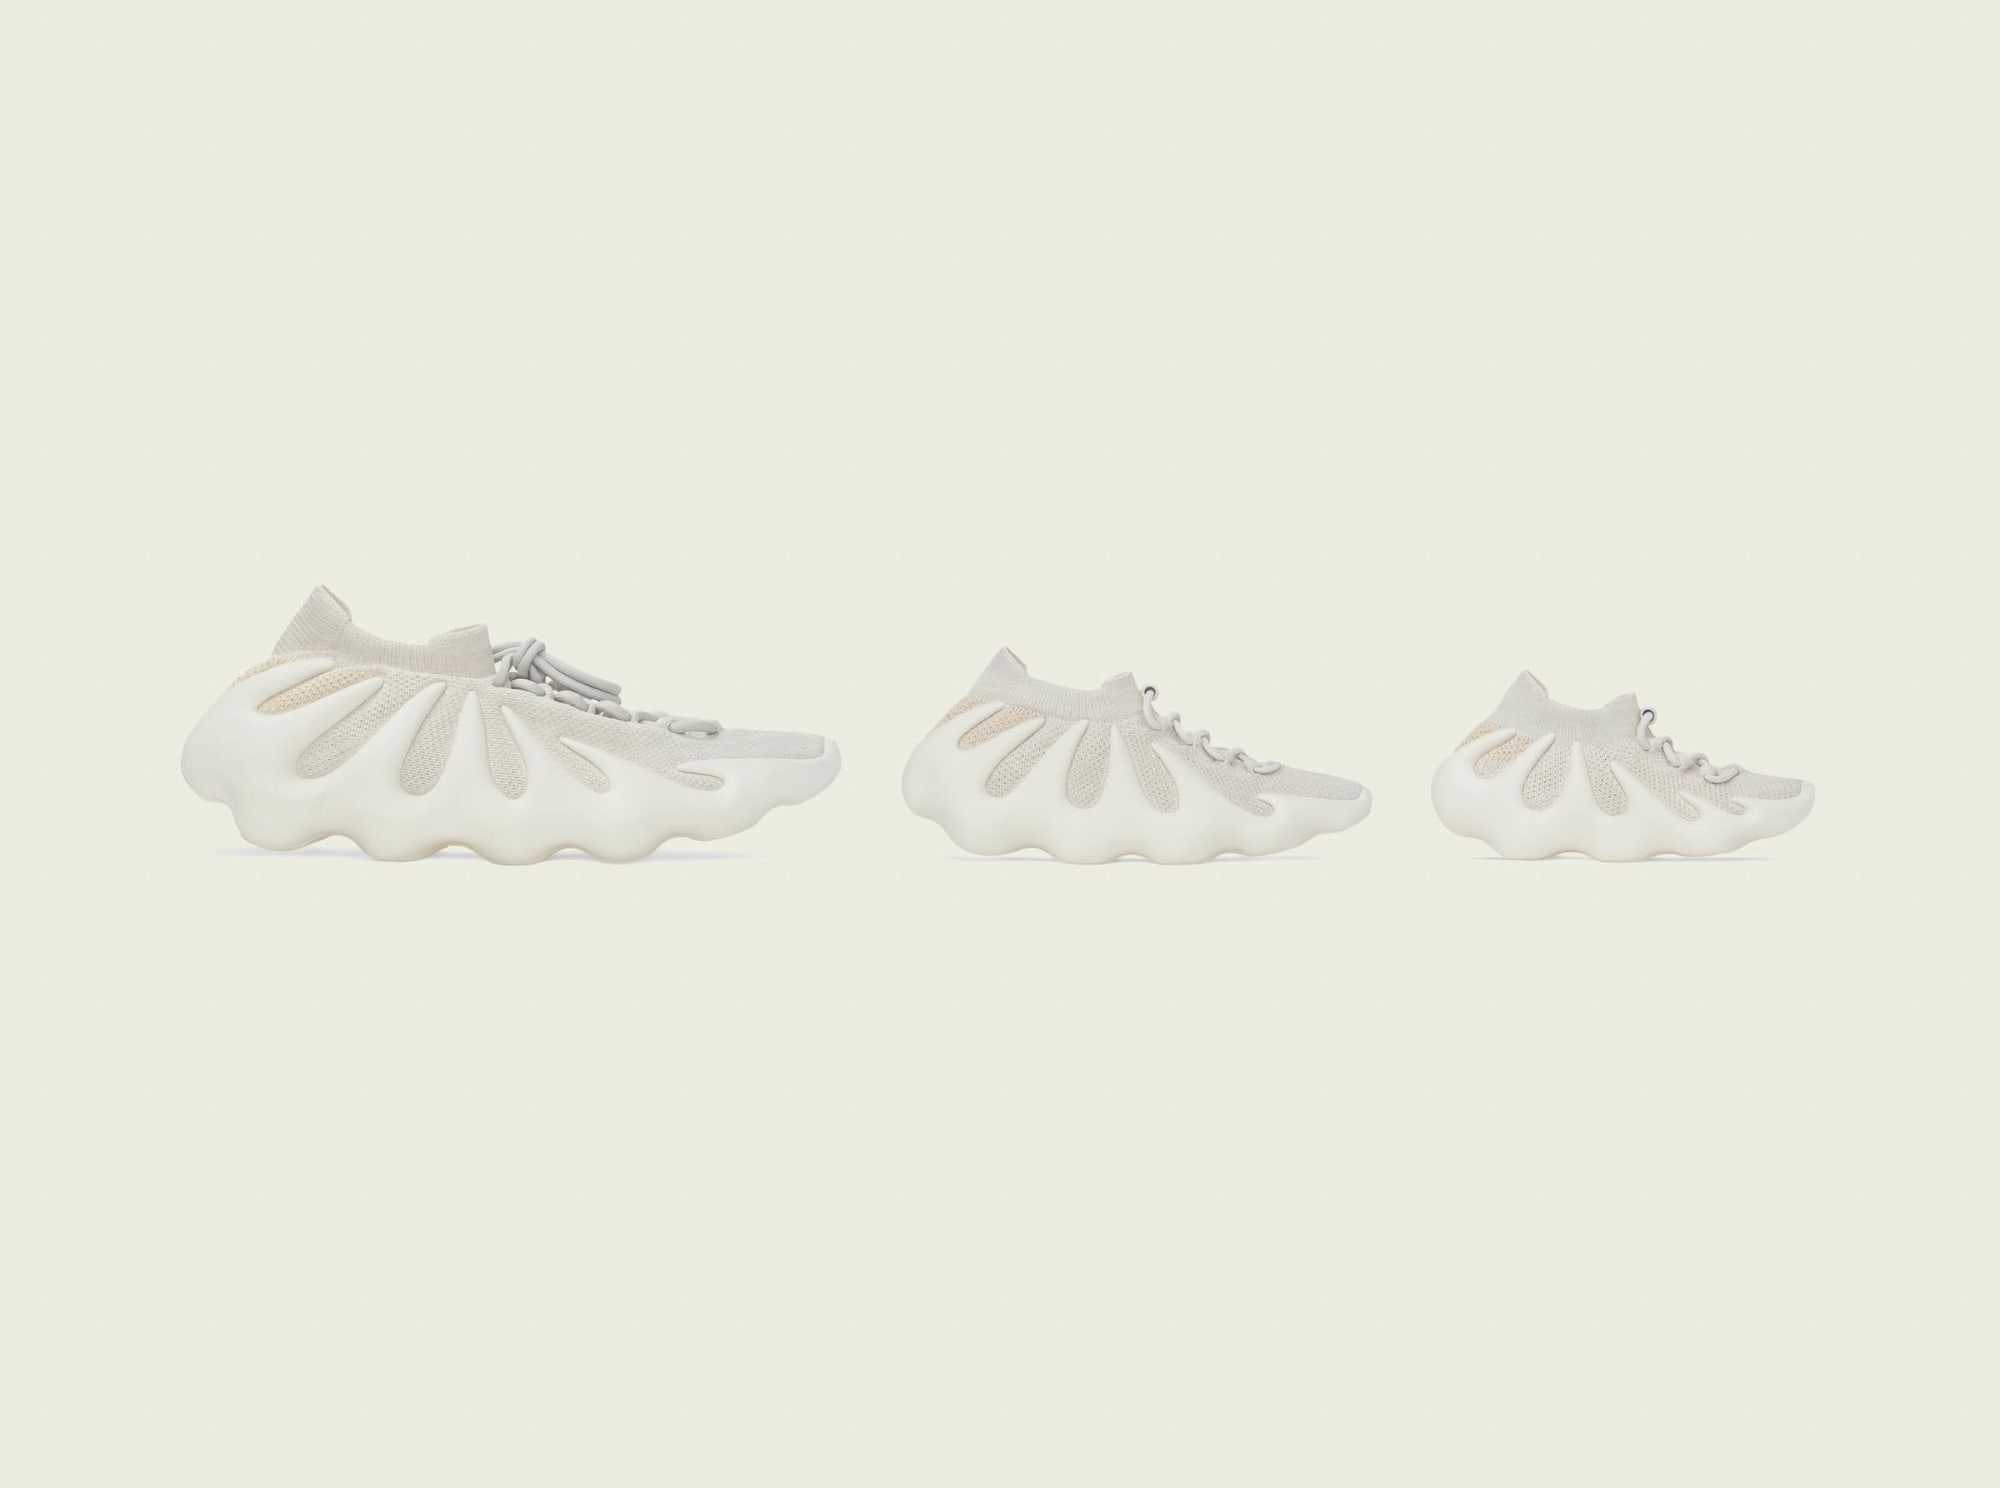 adidas-yeezy-450-cloud-white-h68038-release-20210306